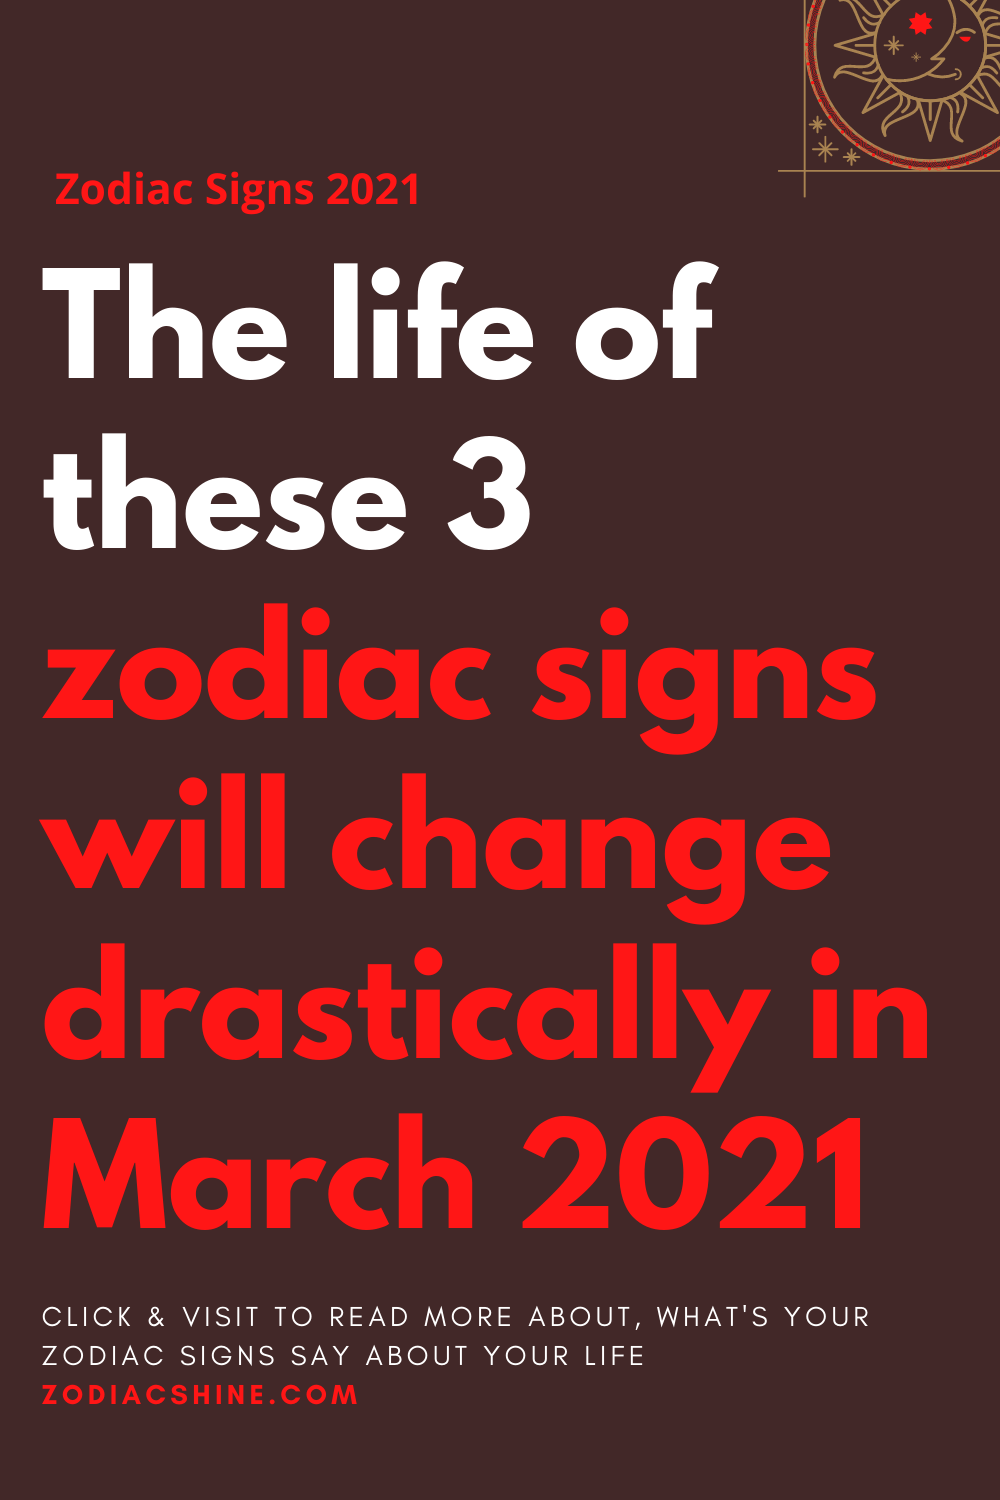 The life of these 3 zodiac signs will change drastically in March 2021